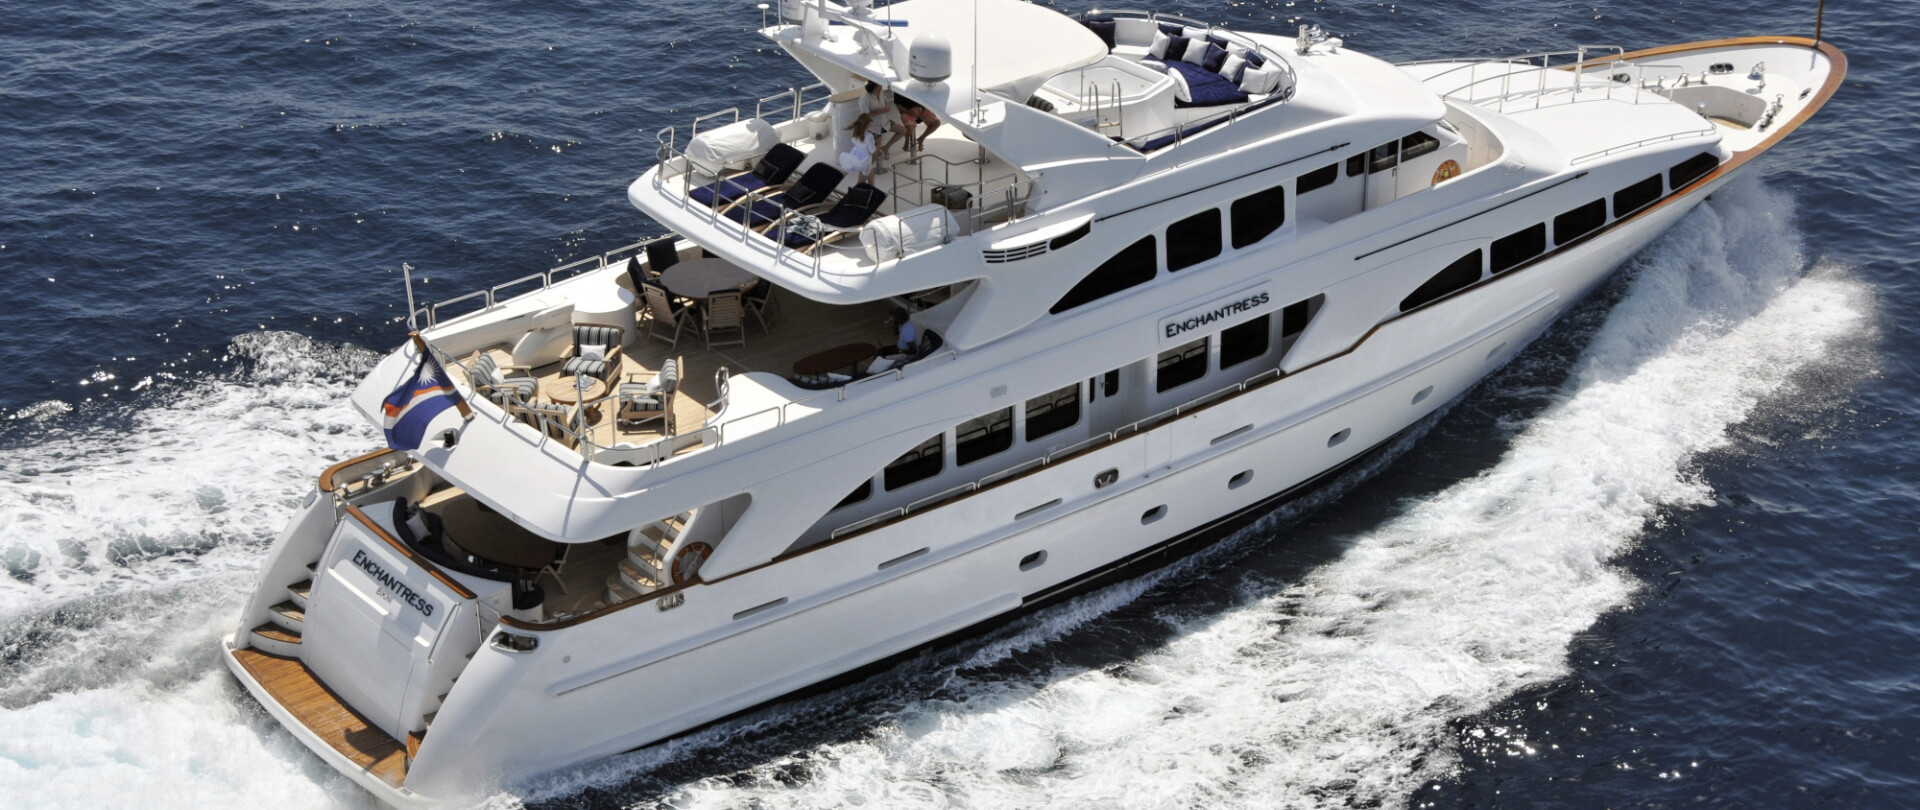 Charter ENCHANTRESS in the East Med photo 1